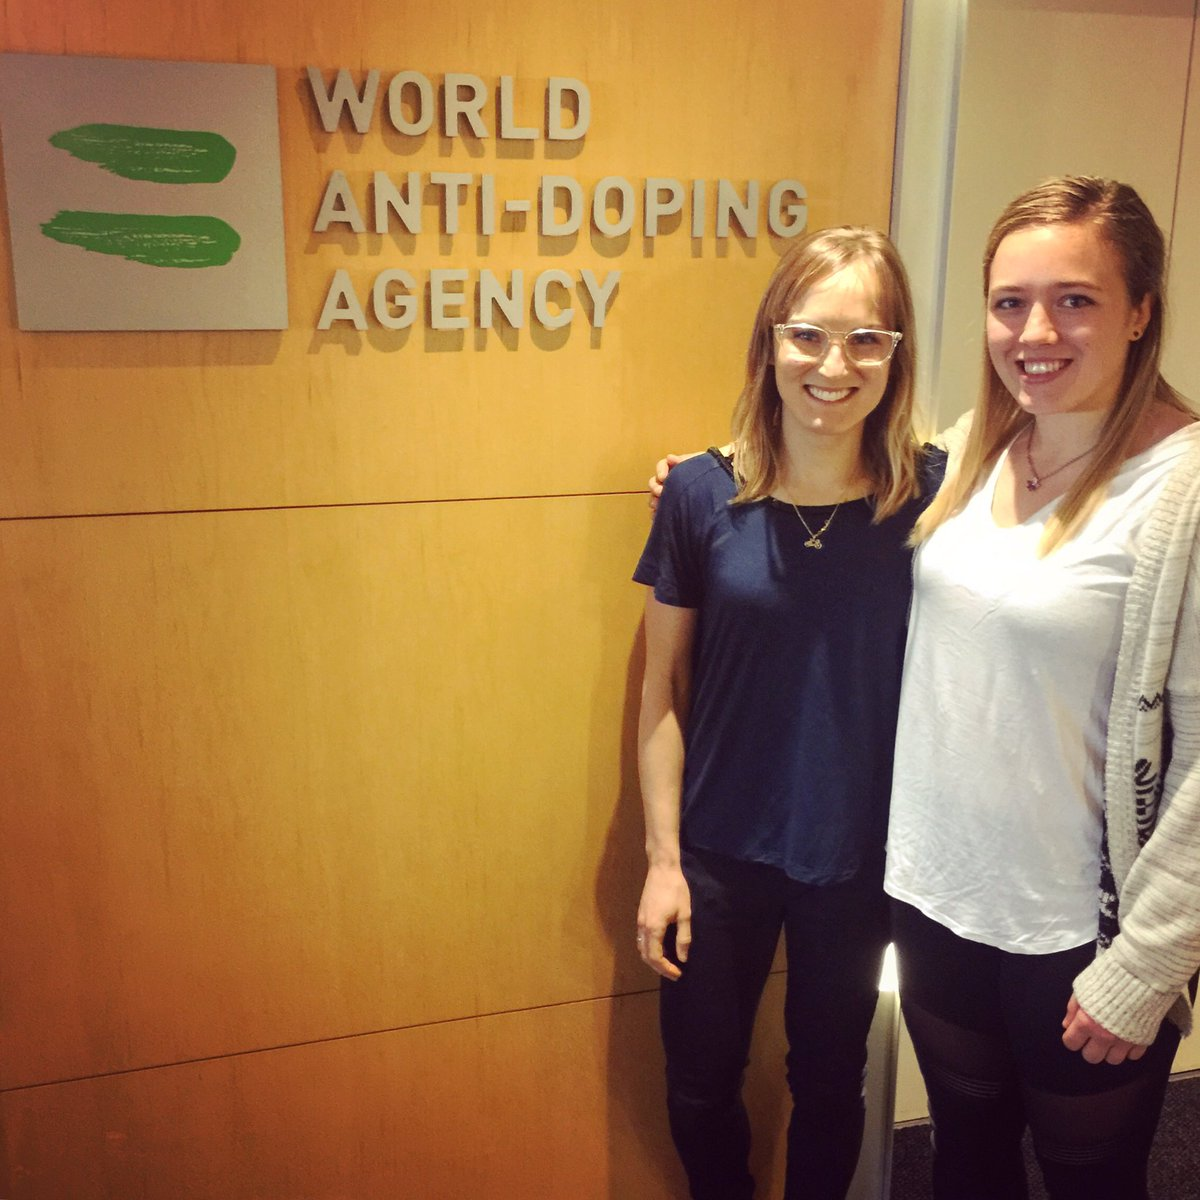 Lex Albrecht On Twitter Productive Morning At Wada Ama Headquarters In Montreal With Olympic Wrestler Doriyeats Sharing Feedback Experience Wada S Crew Is Savvy Passionate Committed To Truesport Helping To Keep